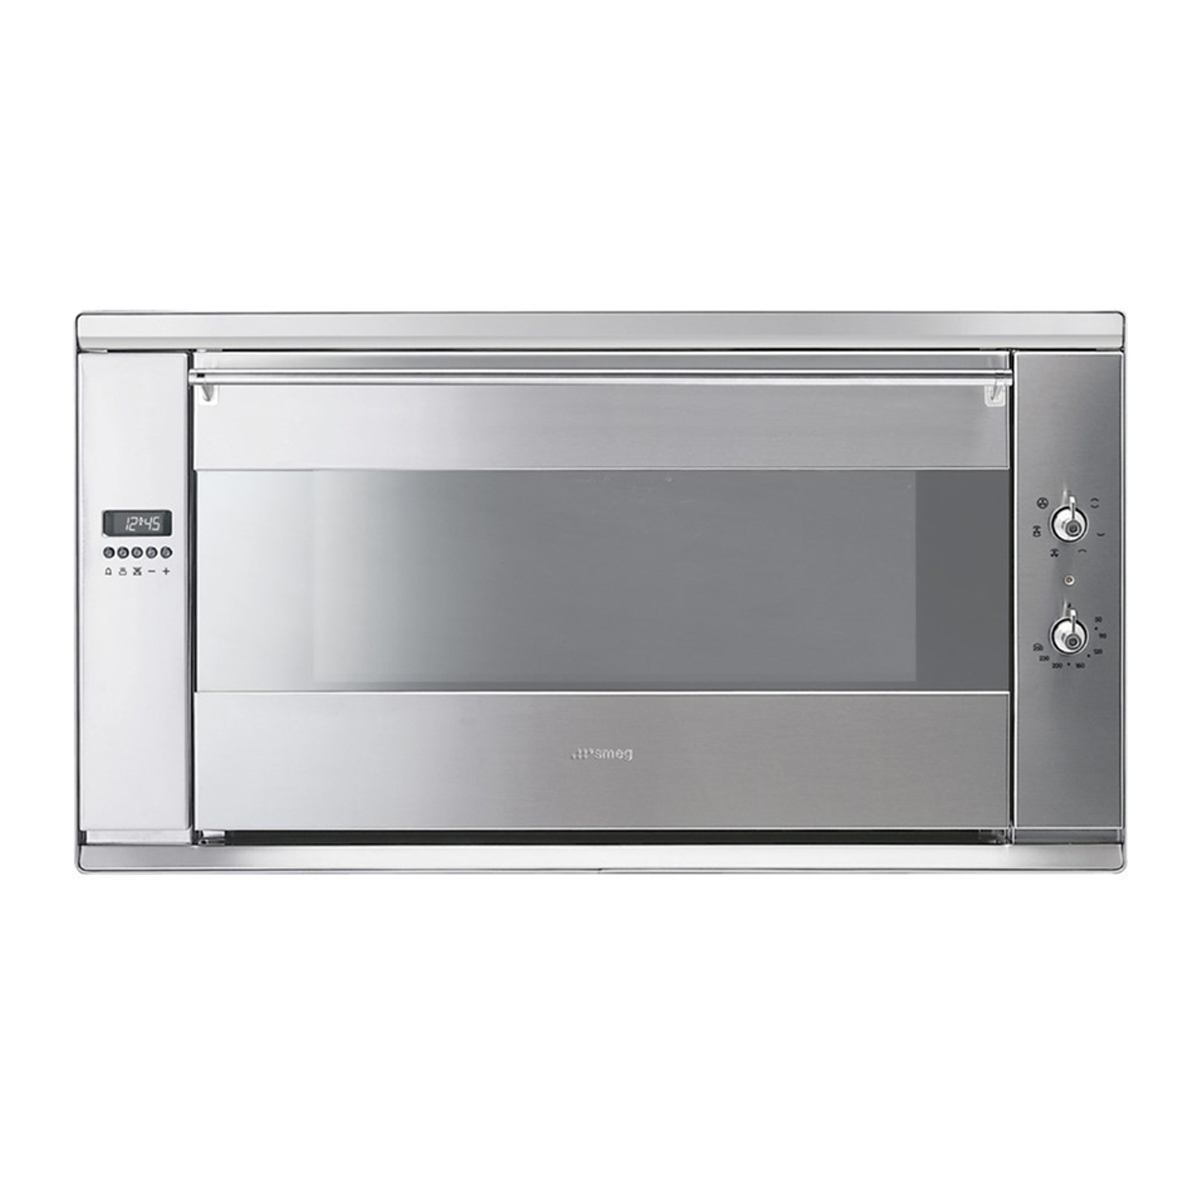 Smeg SA990XR-8 90cm Classic Multifunction Electric Oven 68604